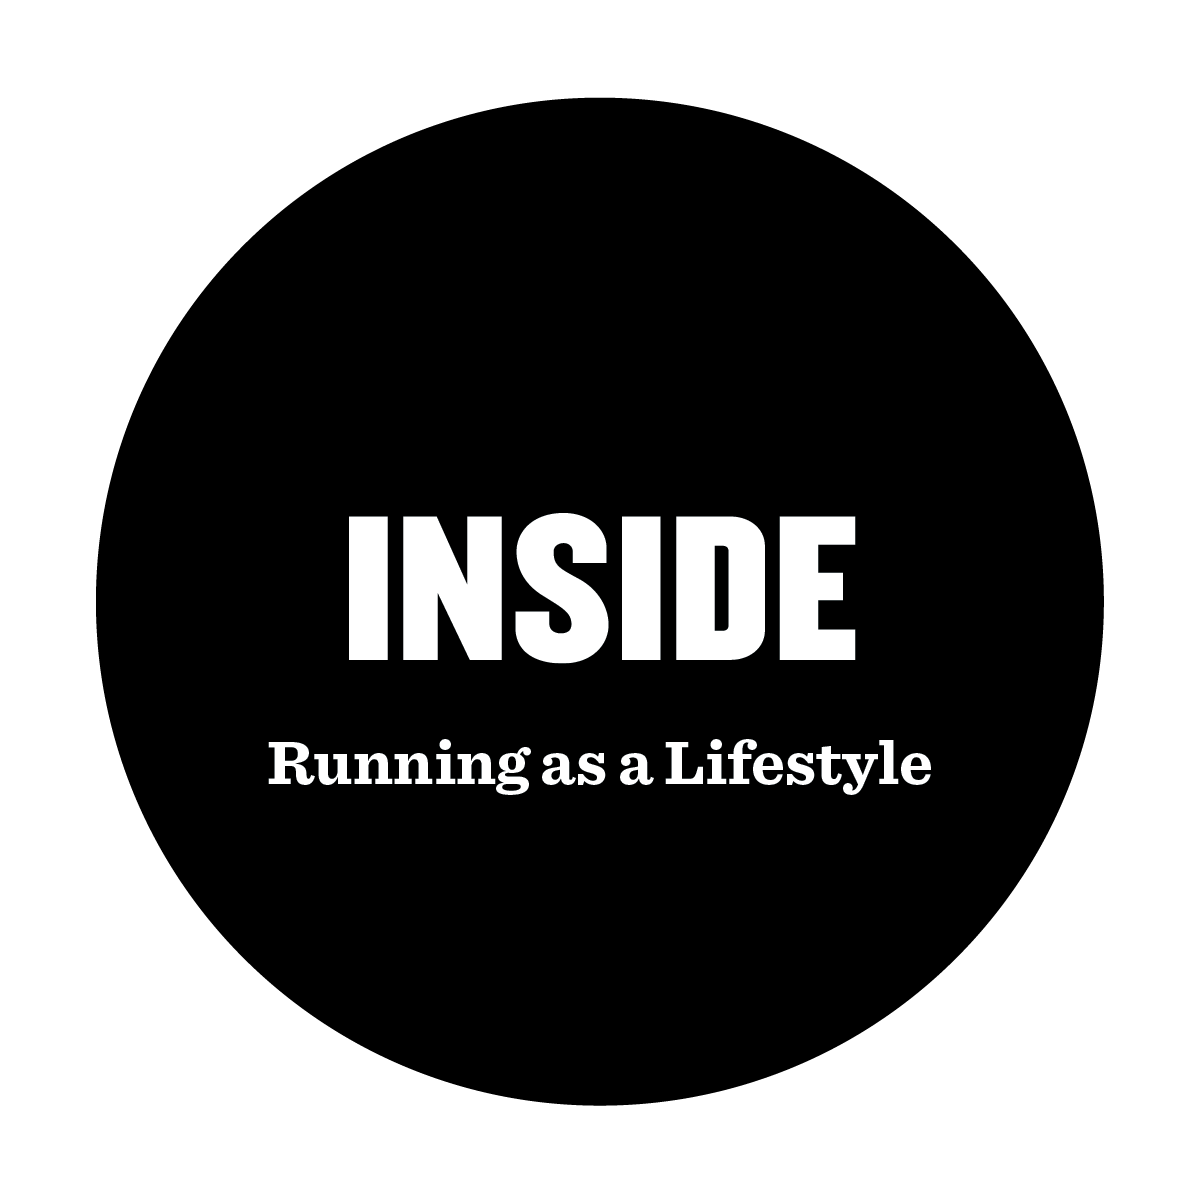 INSIDE Running as a lifestyle